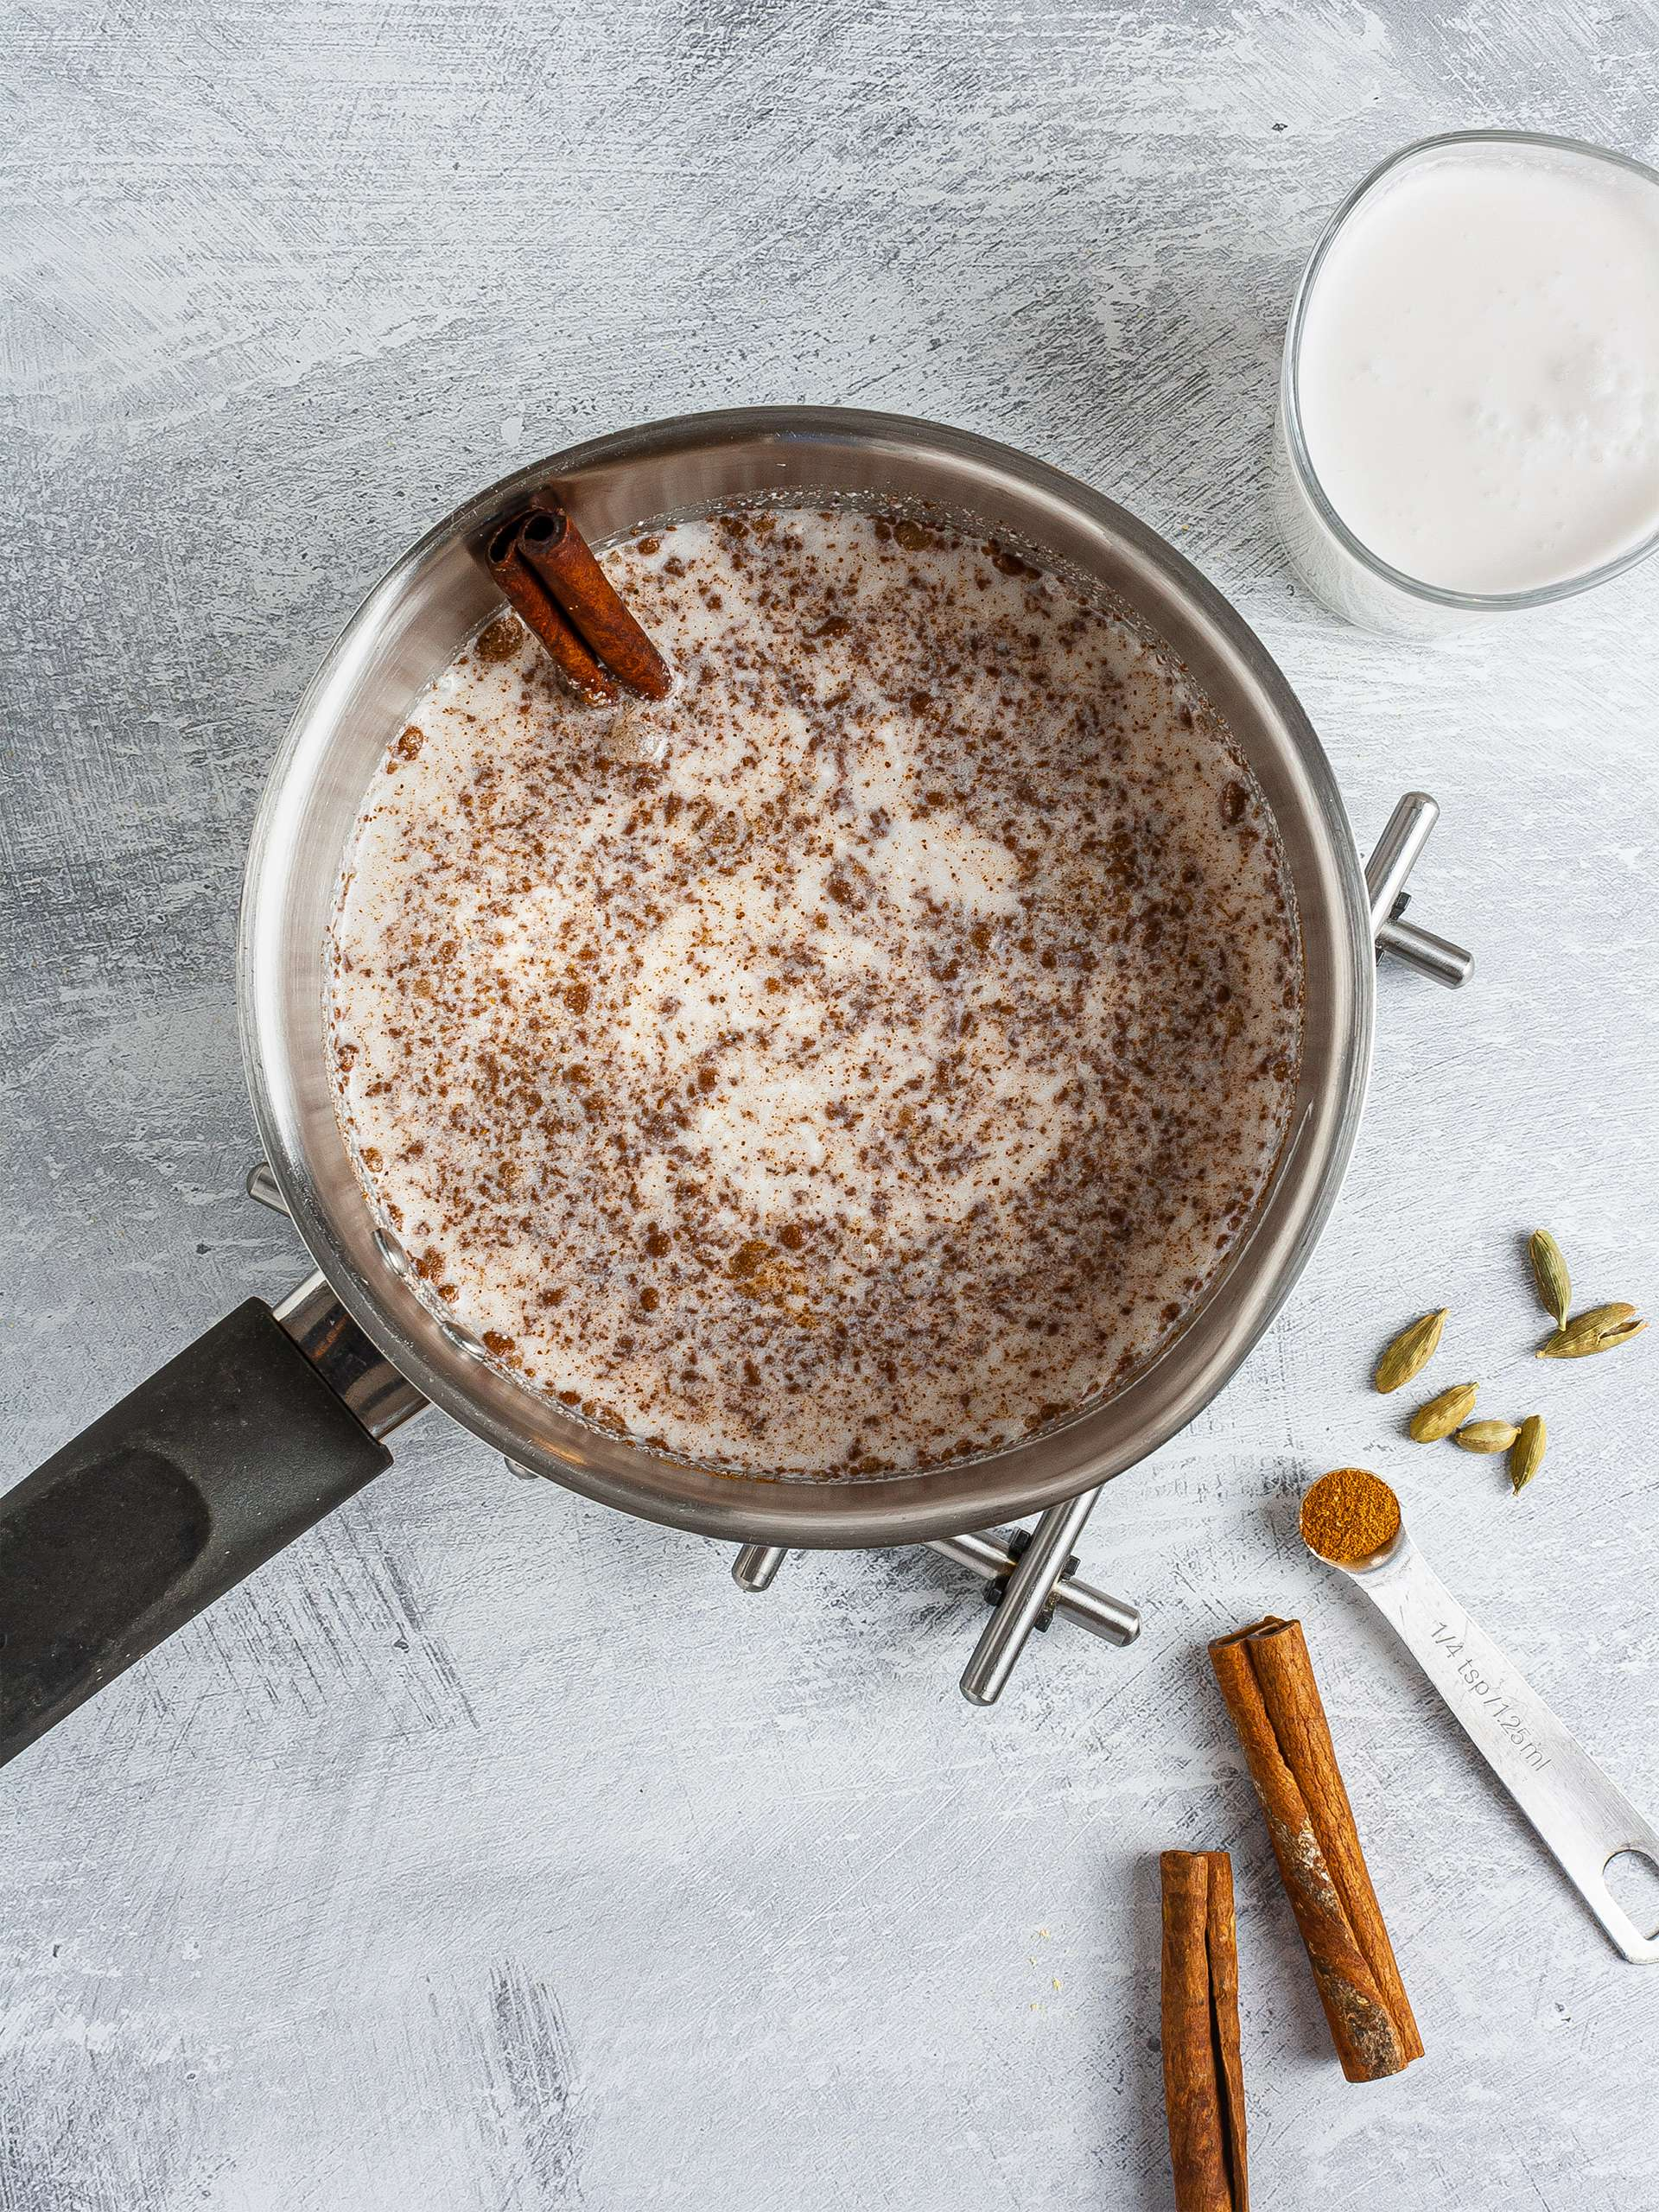 Coconut milk simmering with cinnamon and cardamom